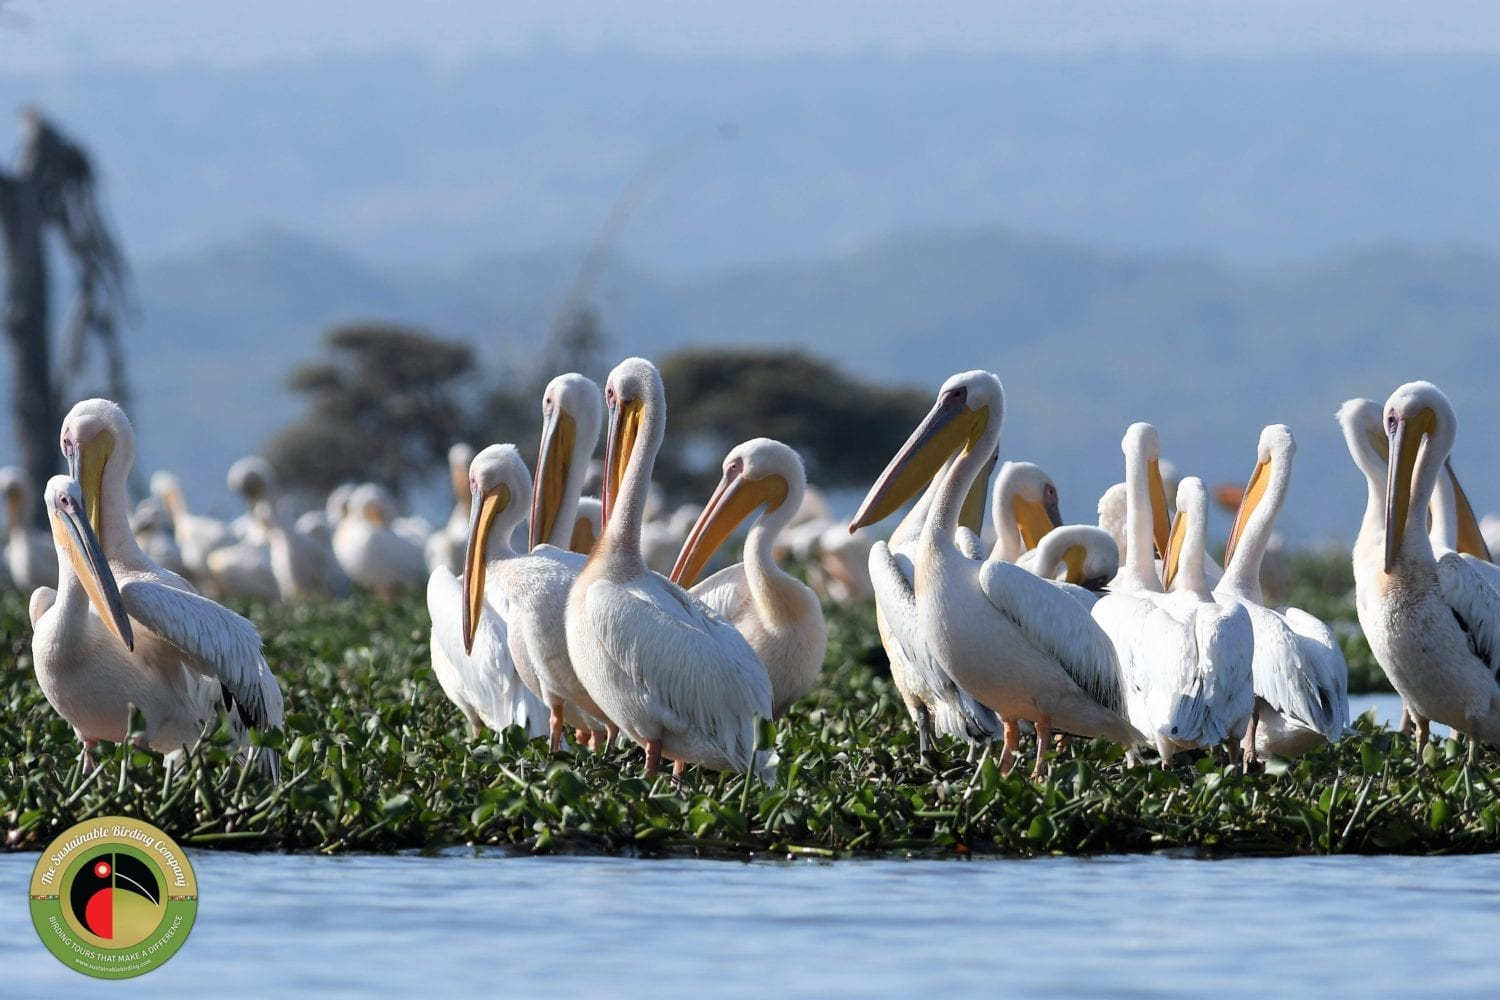 Huge flocks of Great White Pelicans can be seen on our Kenya Birding Tours